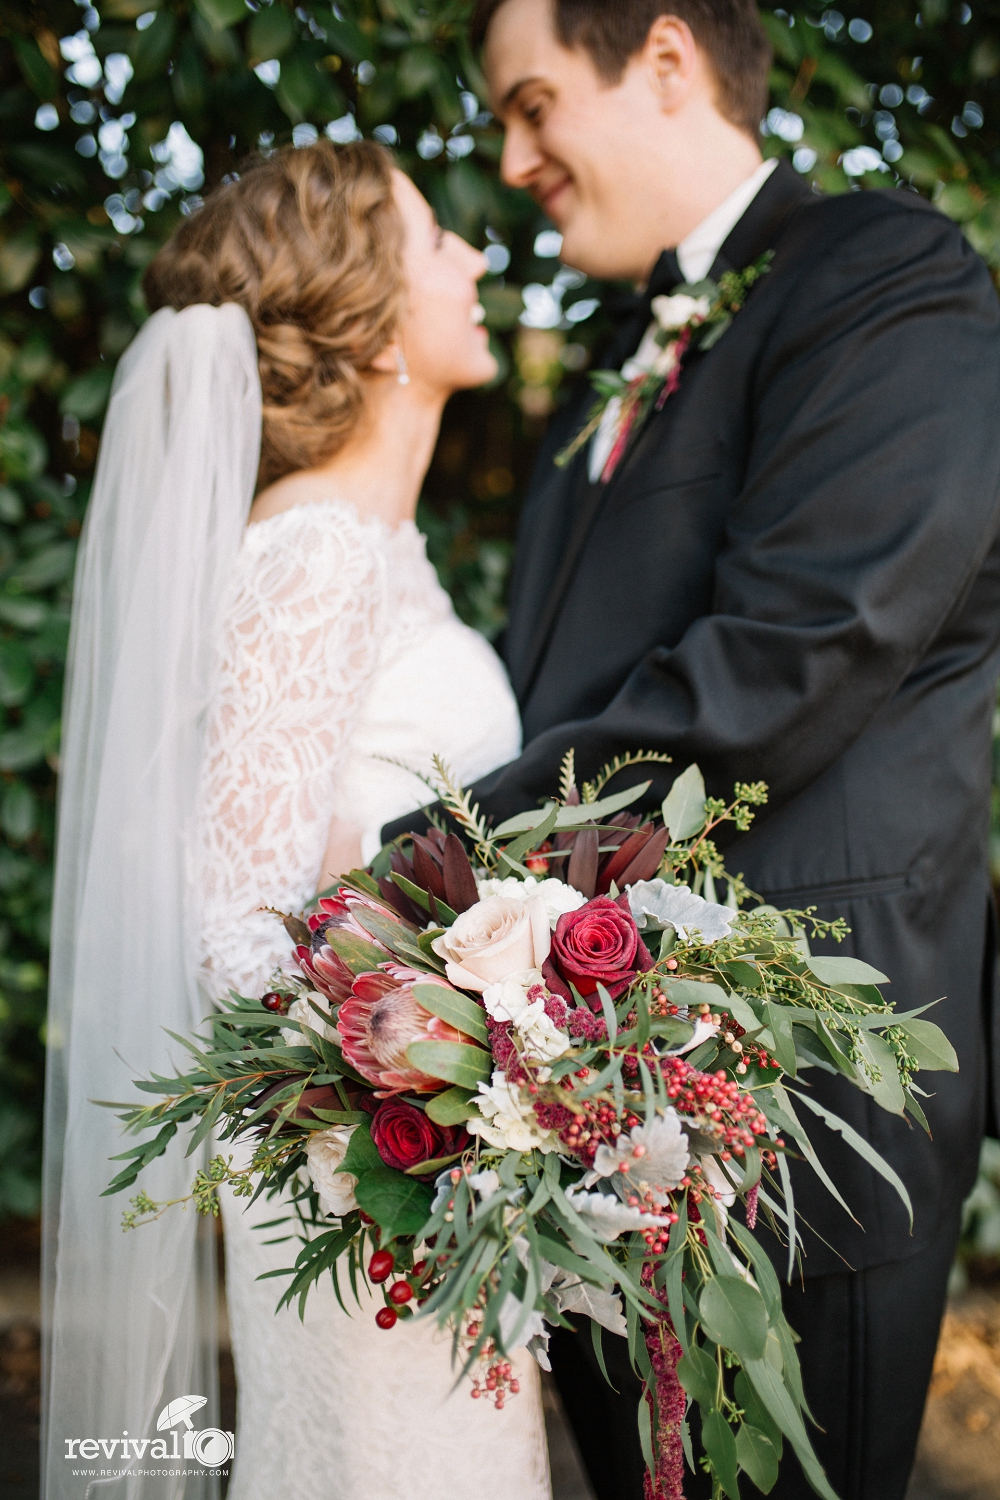 Kendra + Jacob's Classic Vintage Industrial Wedding in Hickory, NC ...